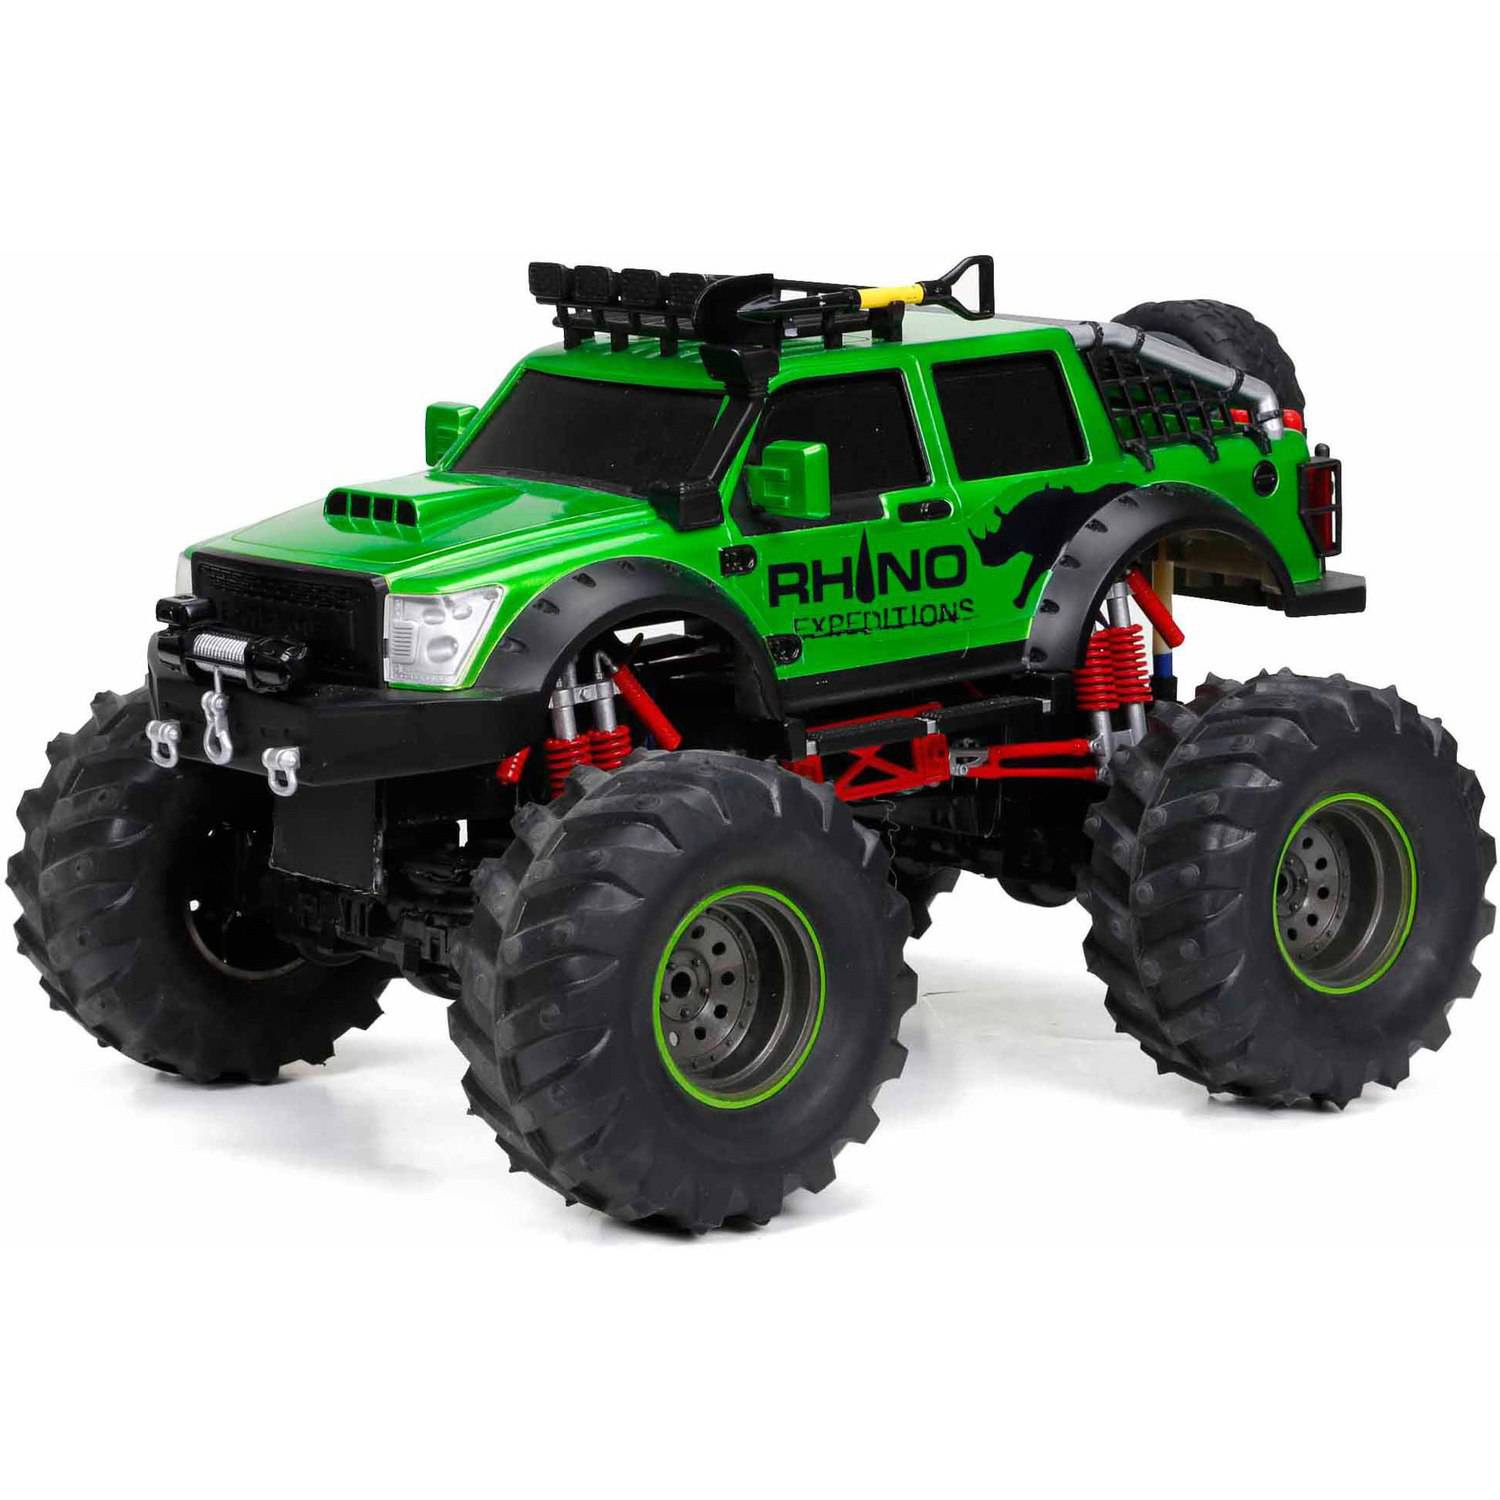 9.6V 4x4 Rhino Expeditions Full Function Radio-Controlled Vehicle, Green